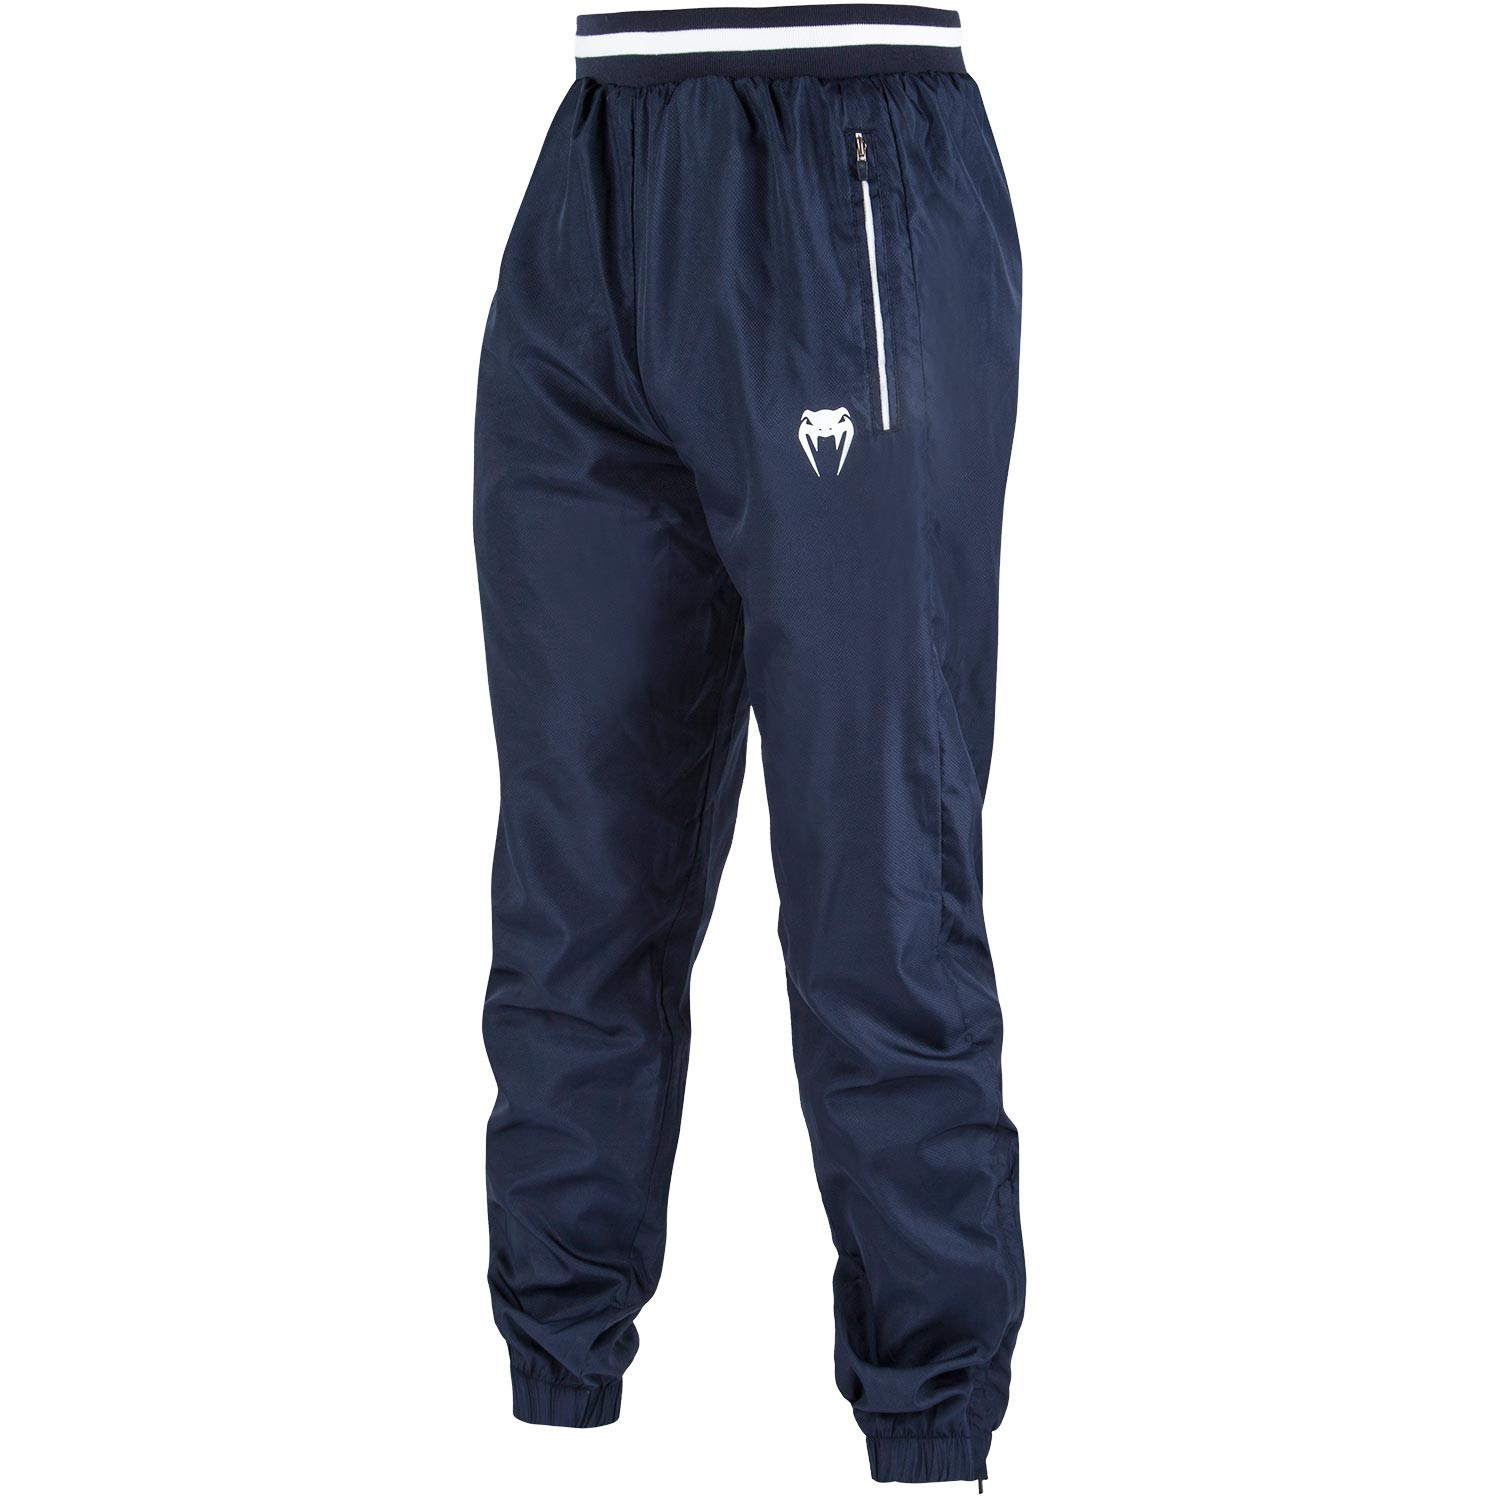 Купить Штаны Venum Club Joggings - Navy Blue, 5256_bl